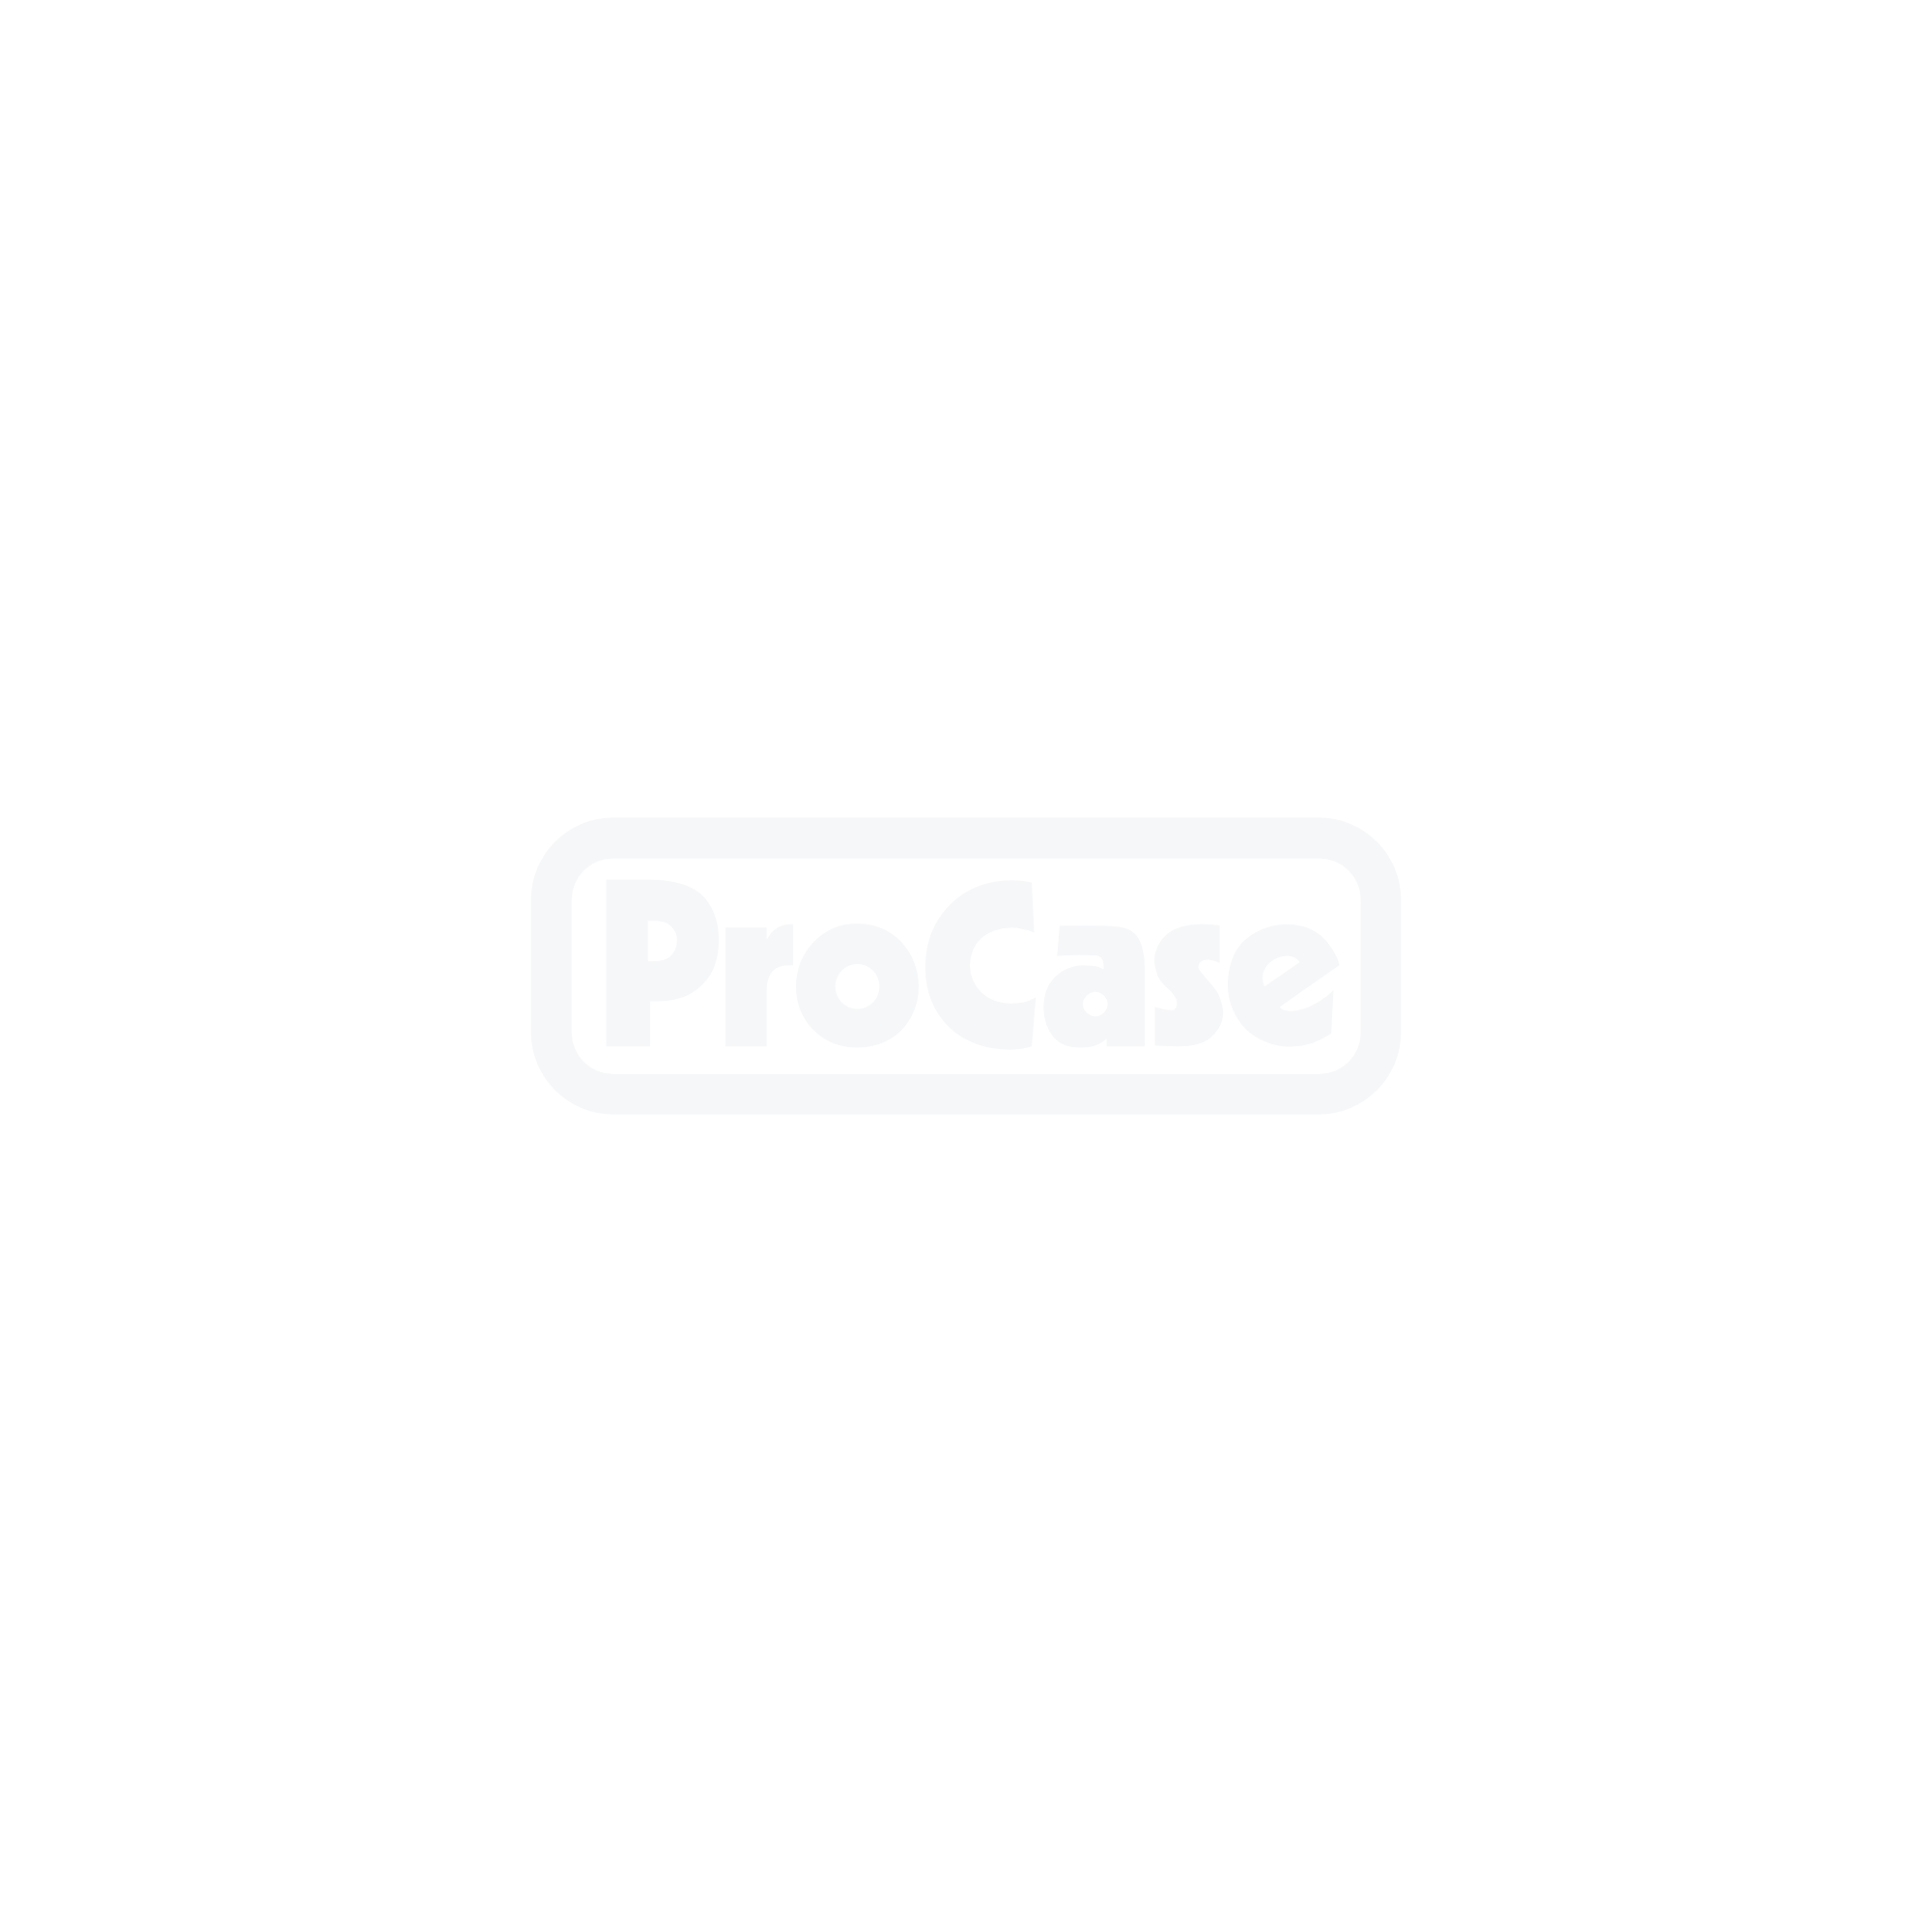 Essential-Rack 3HE 600 tief